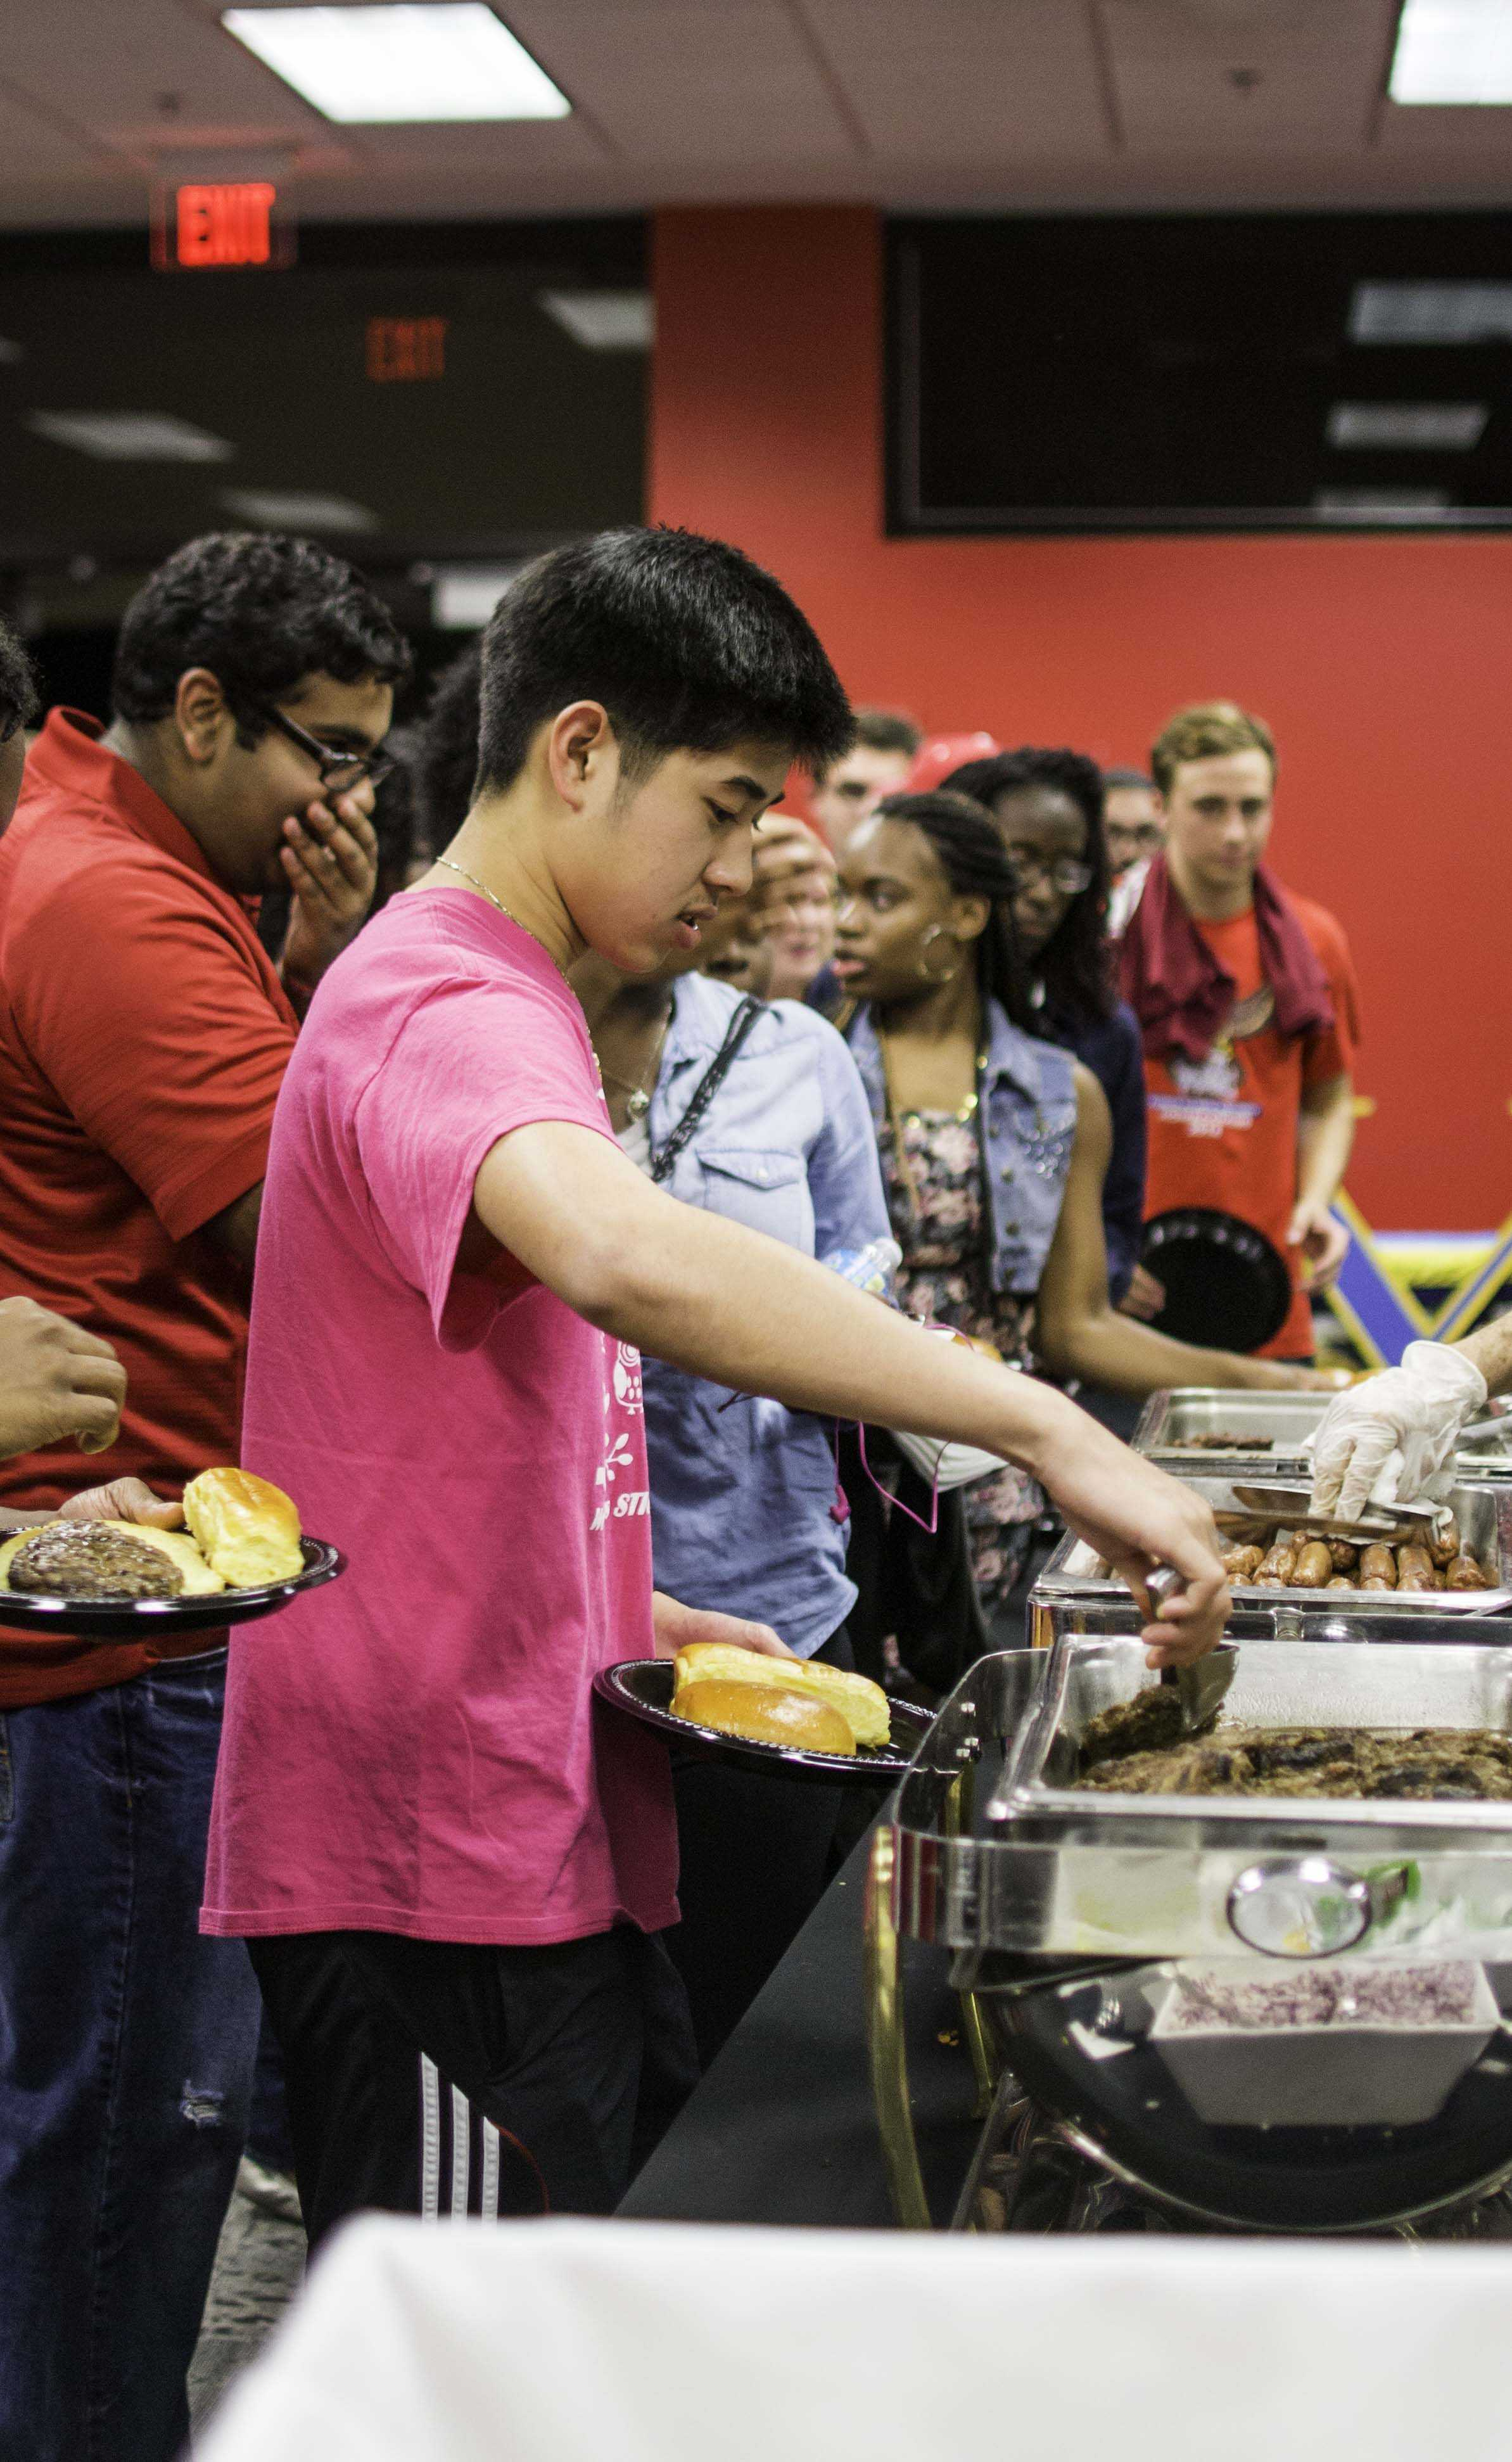 FAU students grabbing food at the Grilling with the Greeks event.